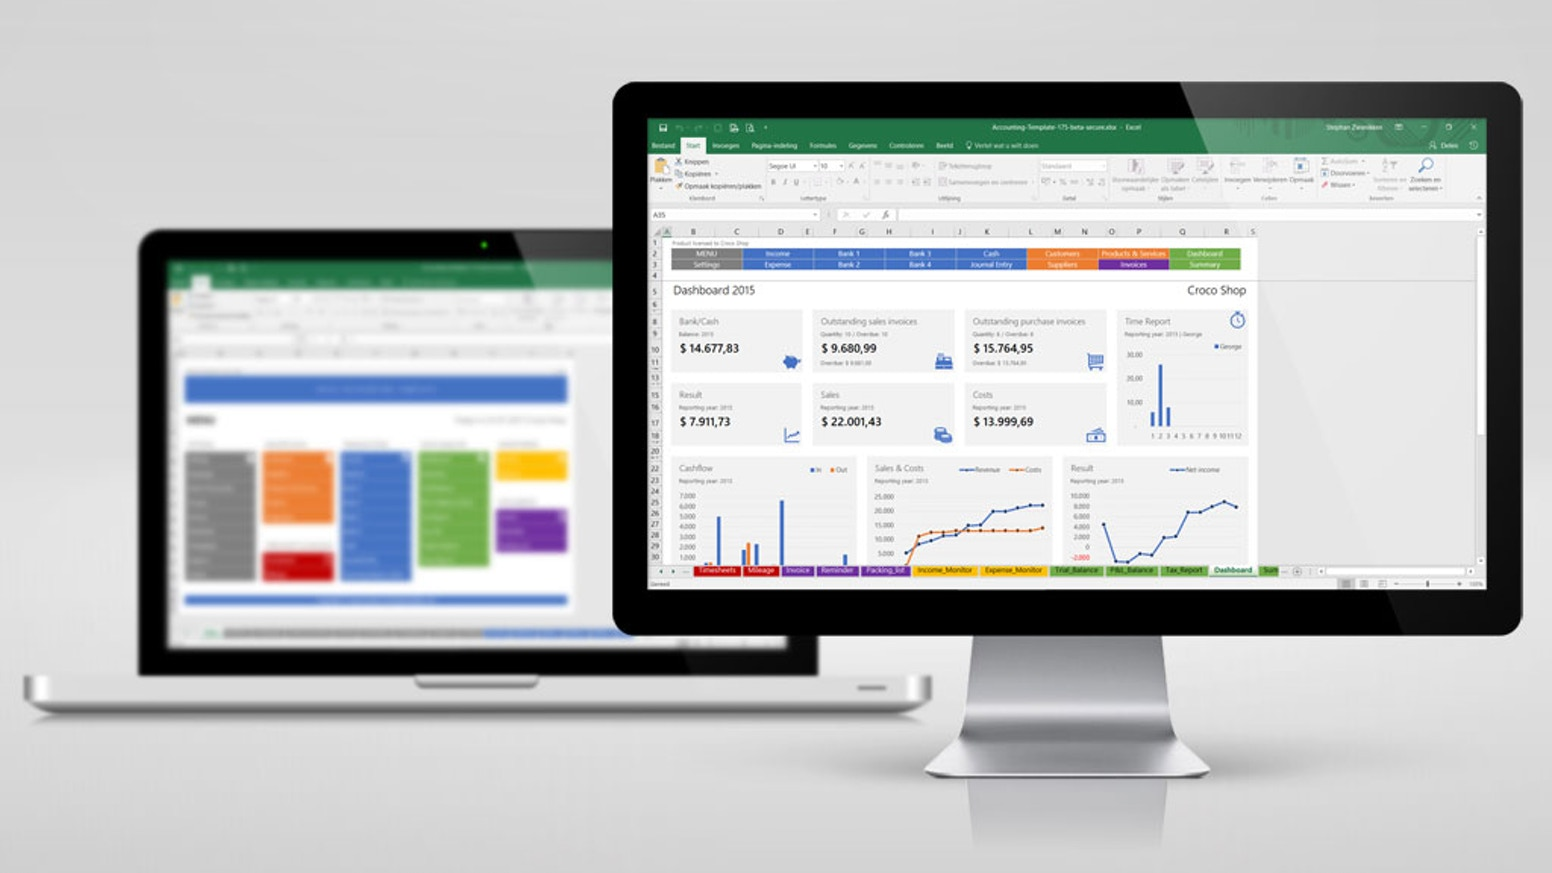 Excel Accounting Template by Stephan Zwanikken — Kickstarter